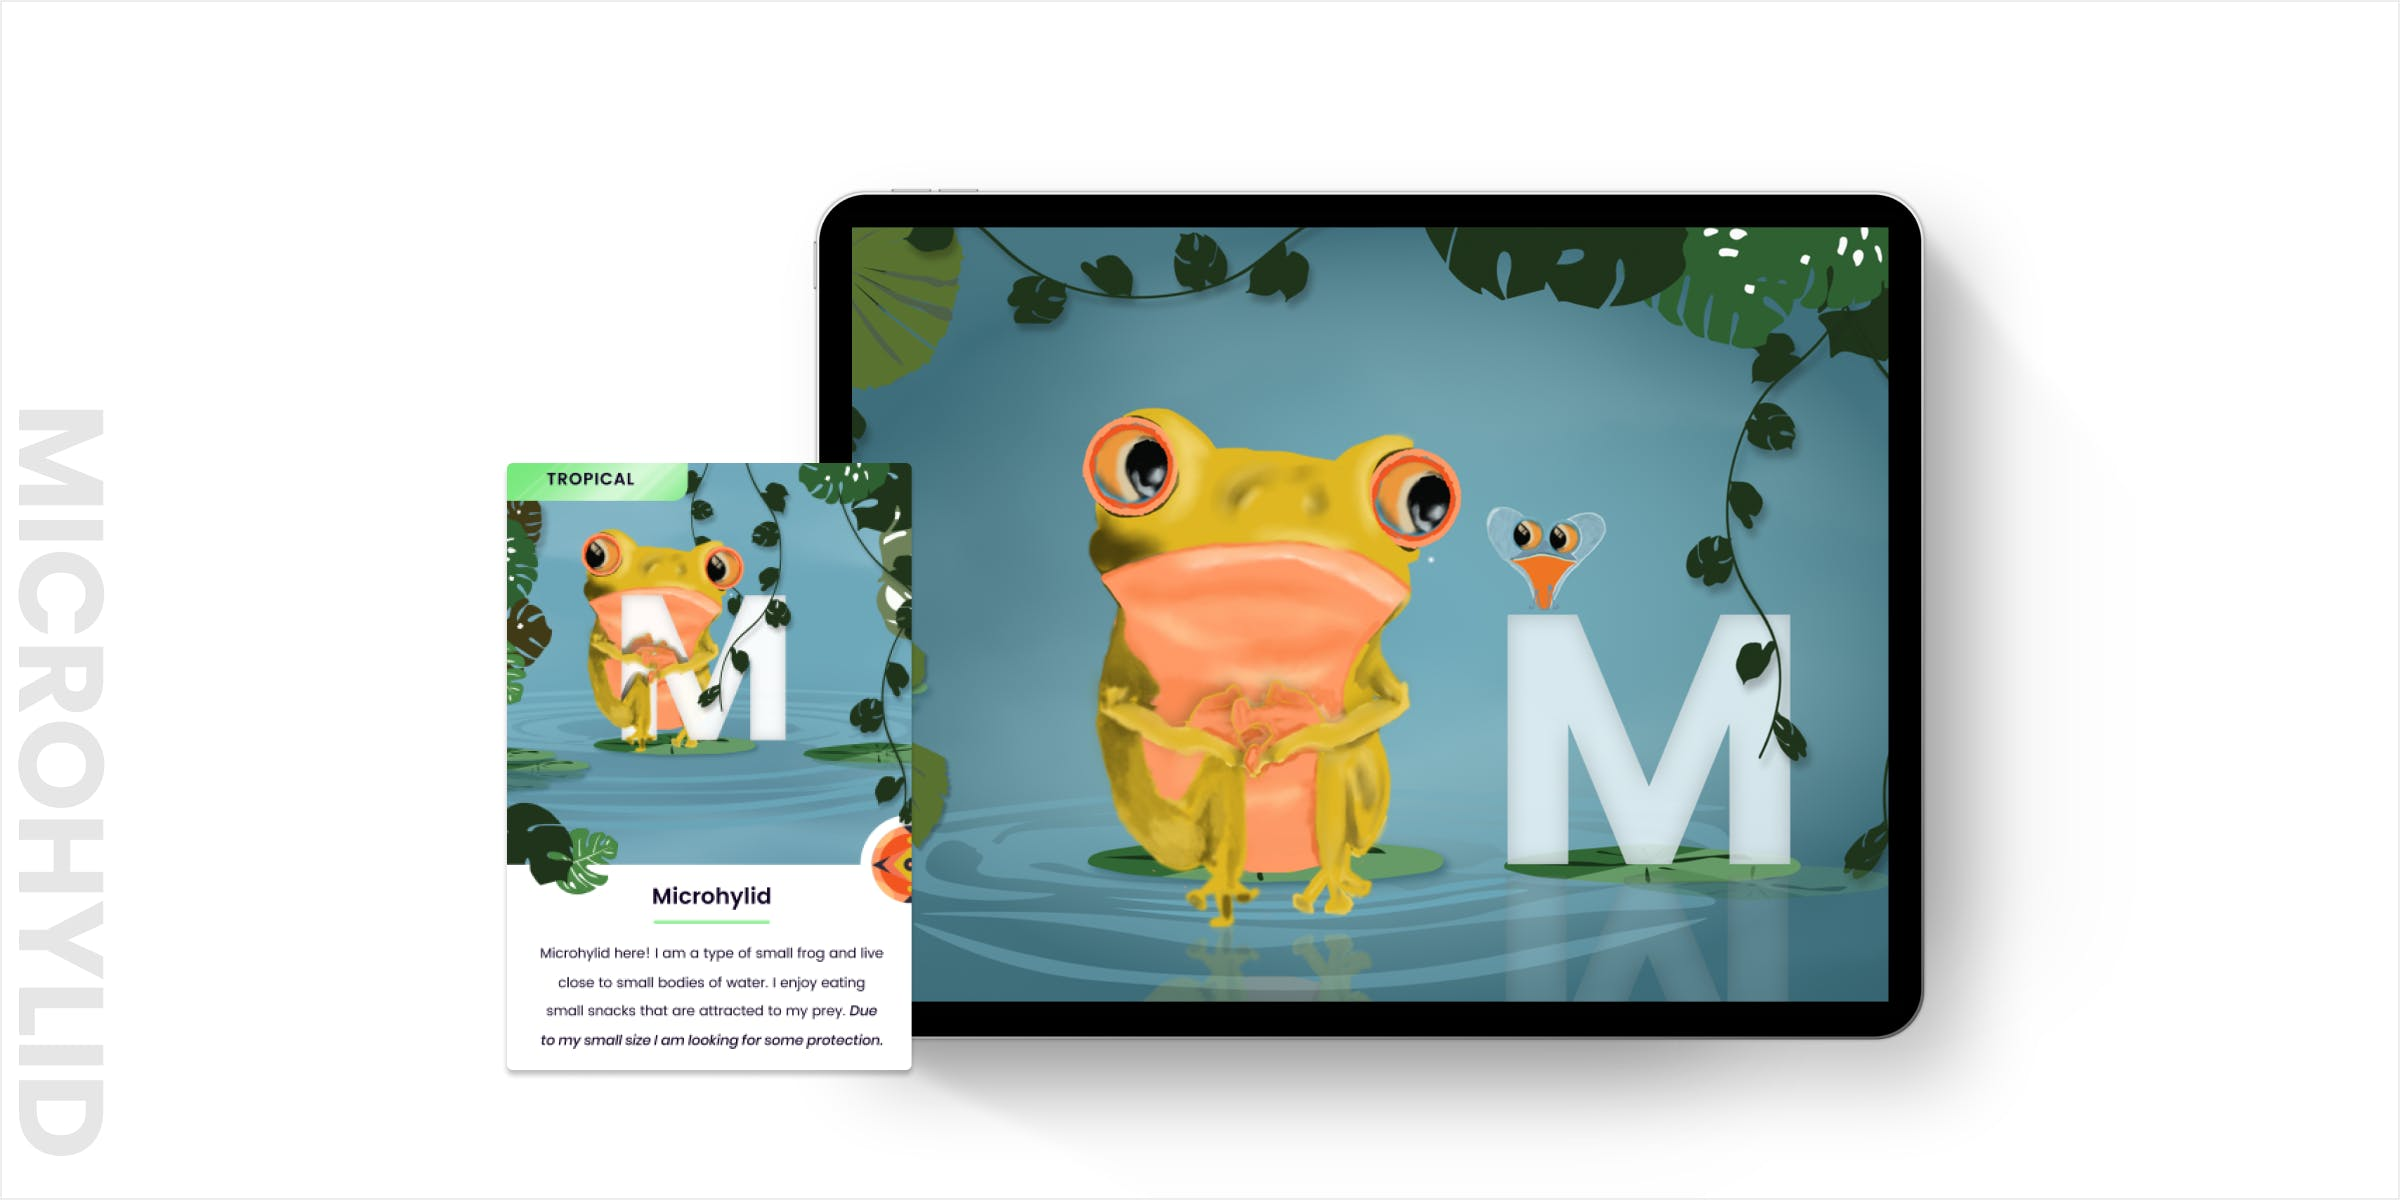 Mockup of microhylid interaction in an iPad and printed card next to it. The microhlid is looking around hiding behind the M looking for protection.